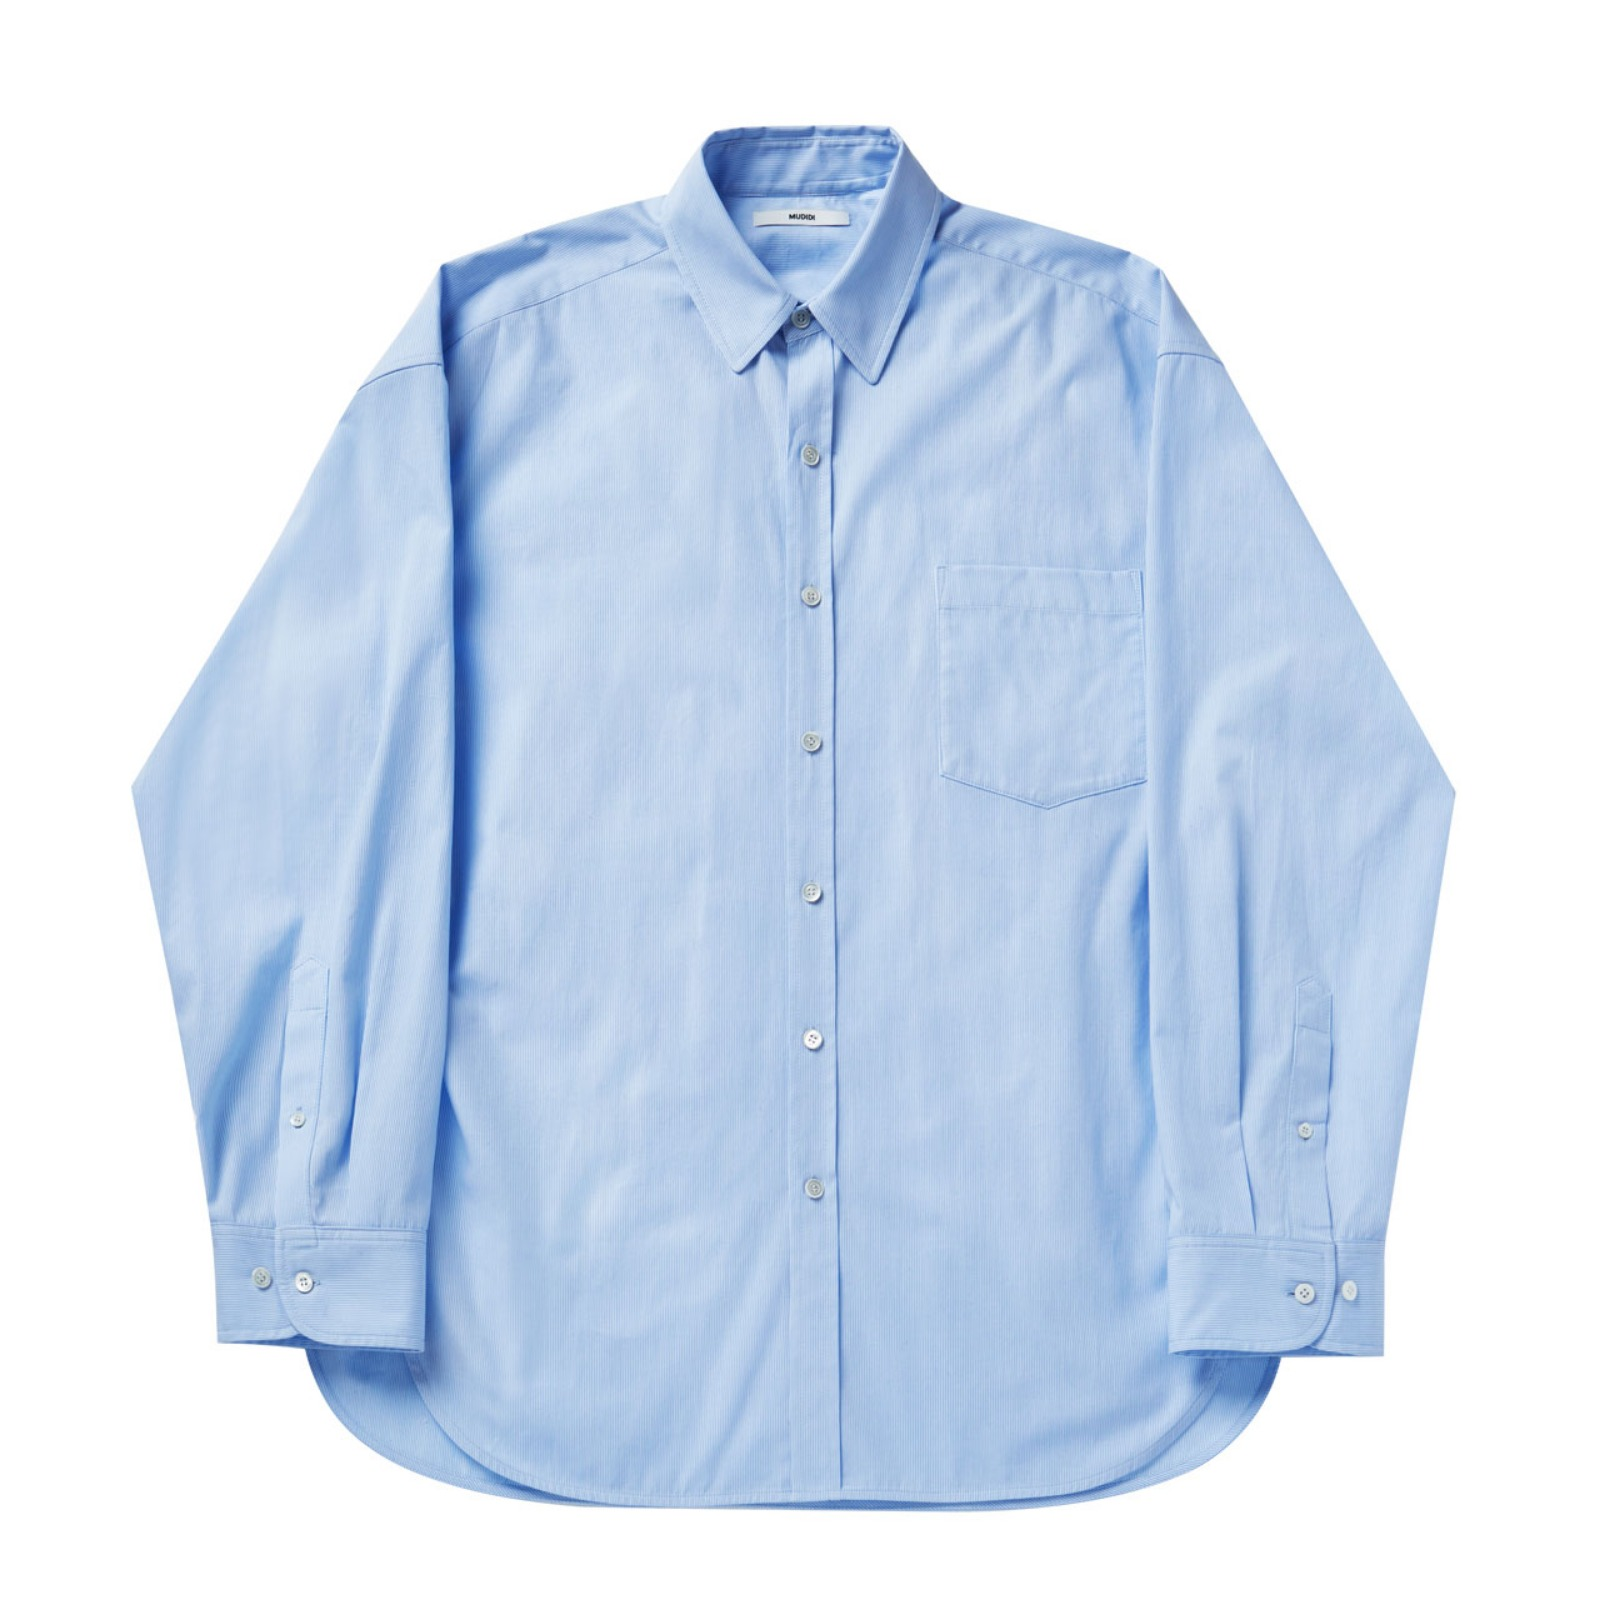 Stripe shirt 002 Blue